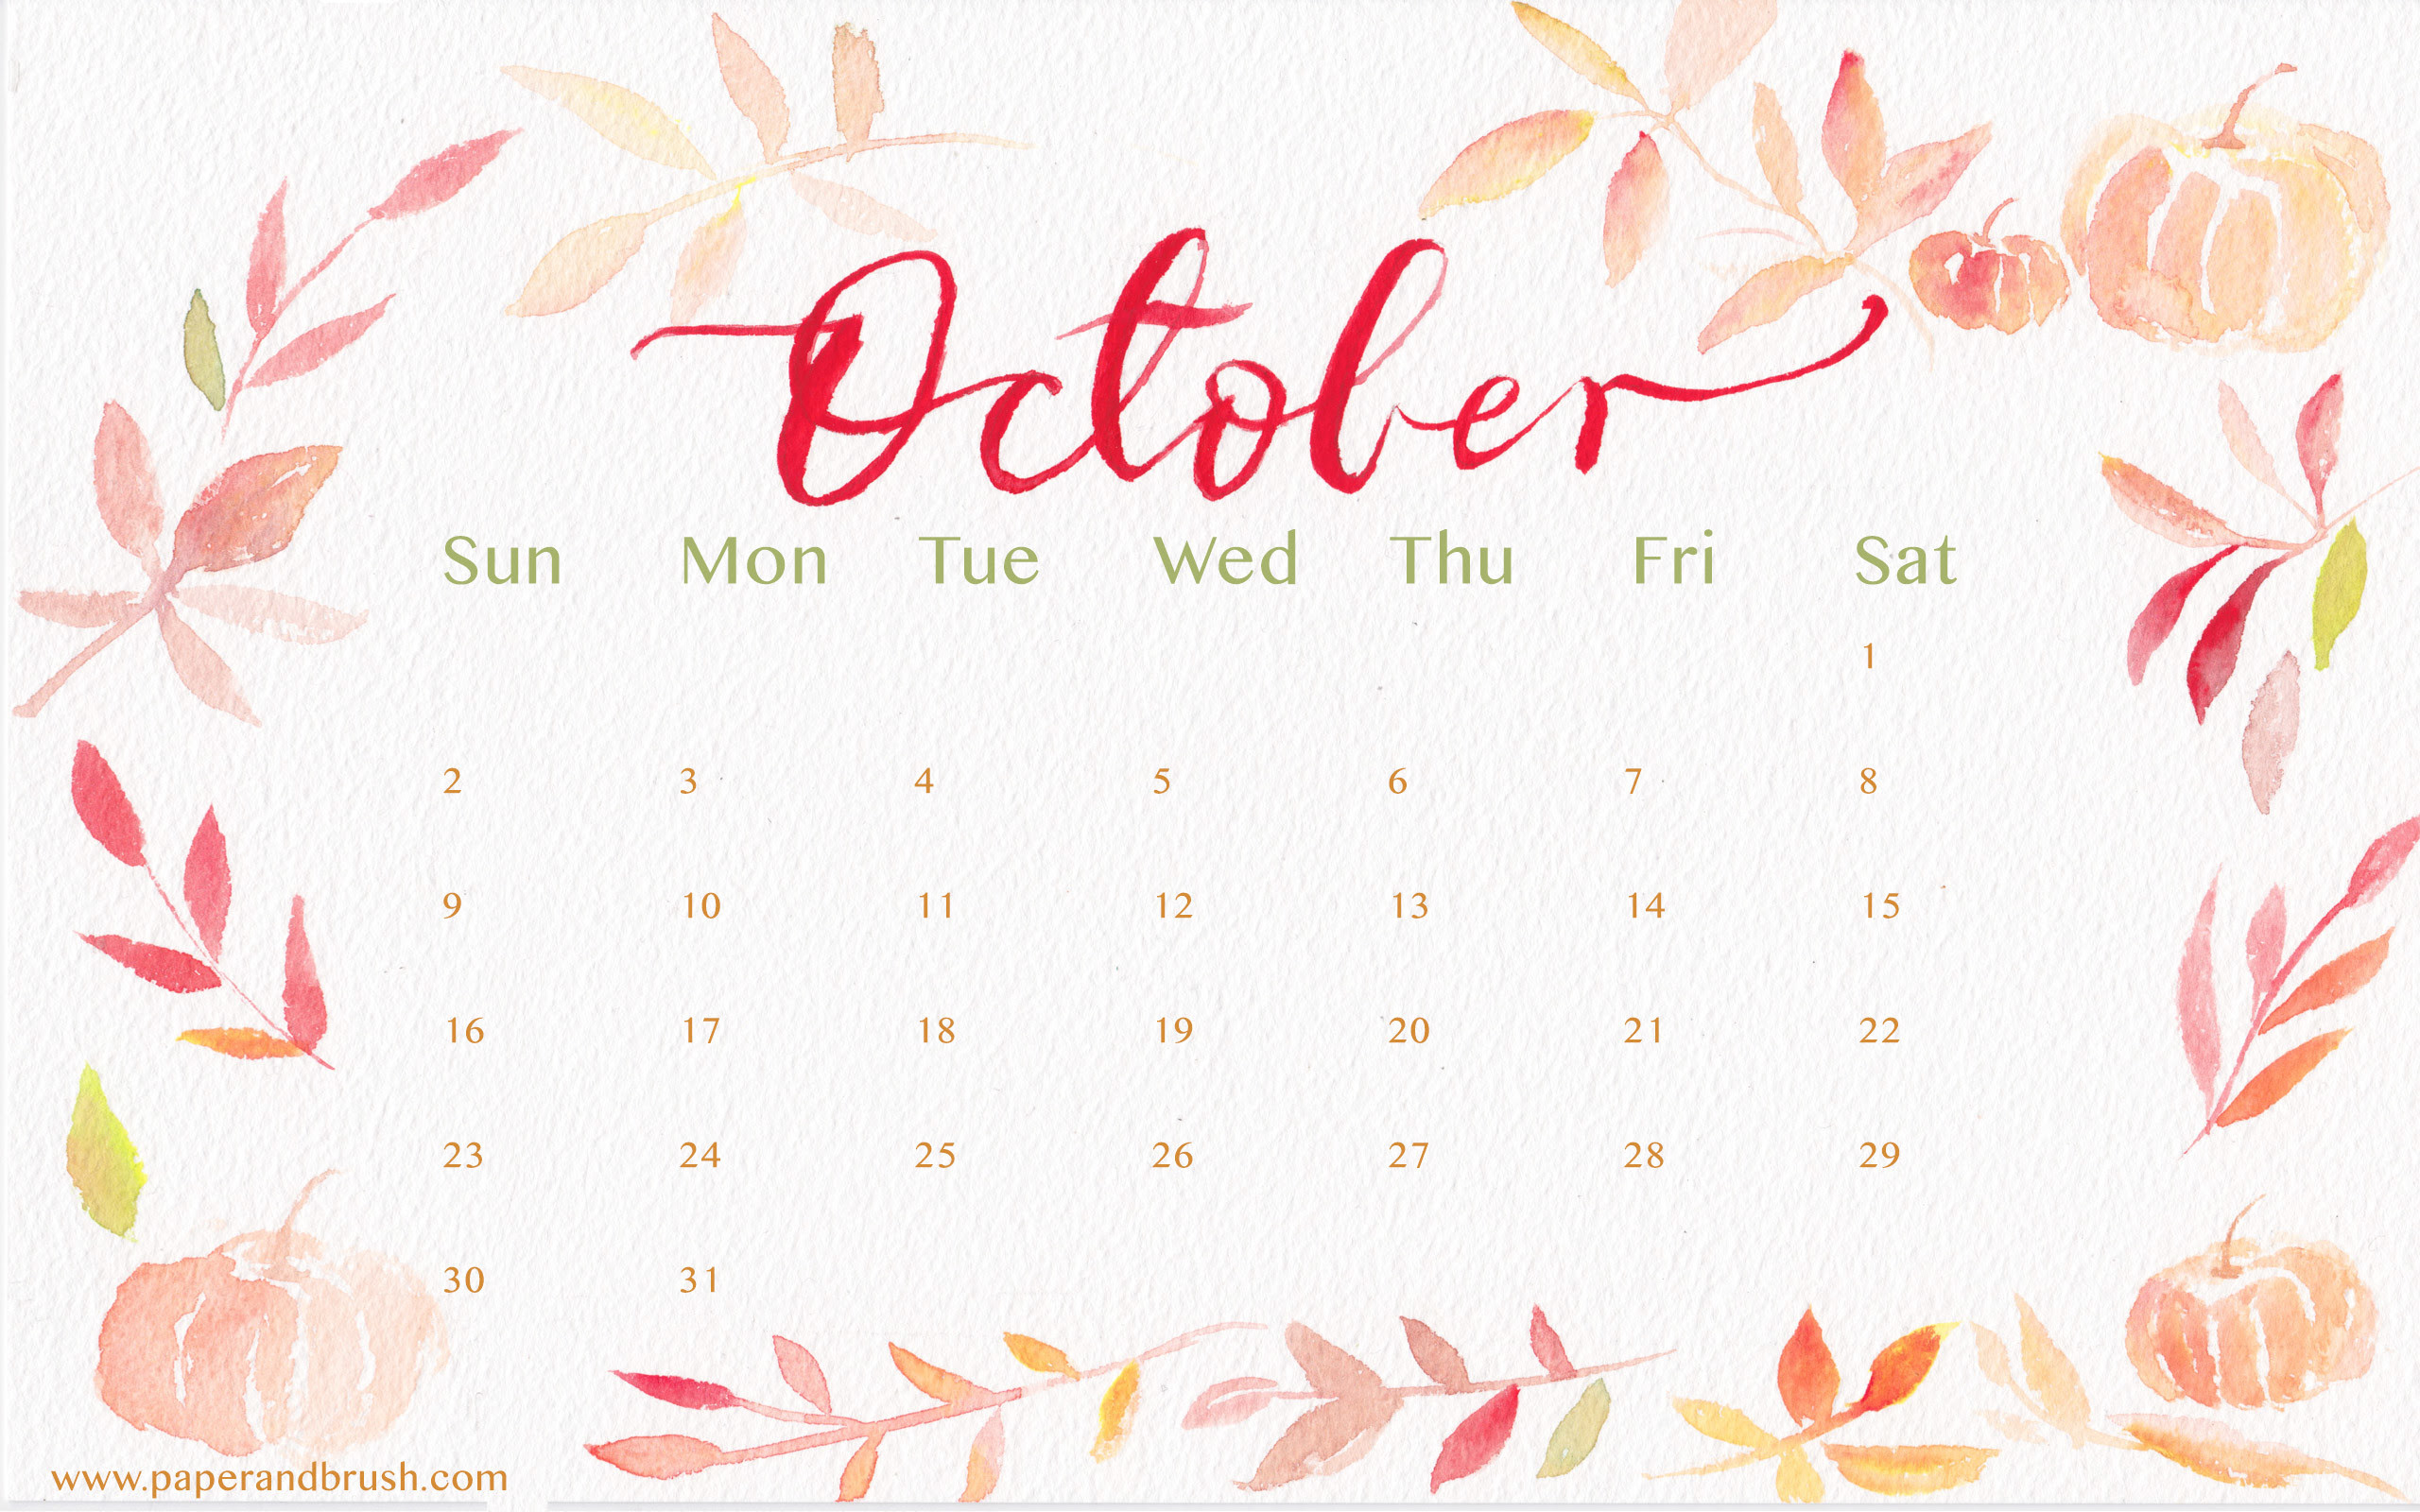 Desktop Wallpaper Calendars October 2018 68+ images